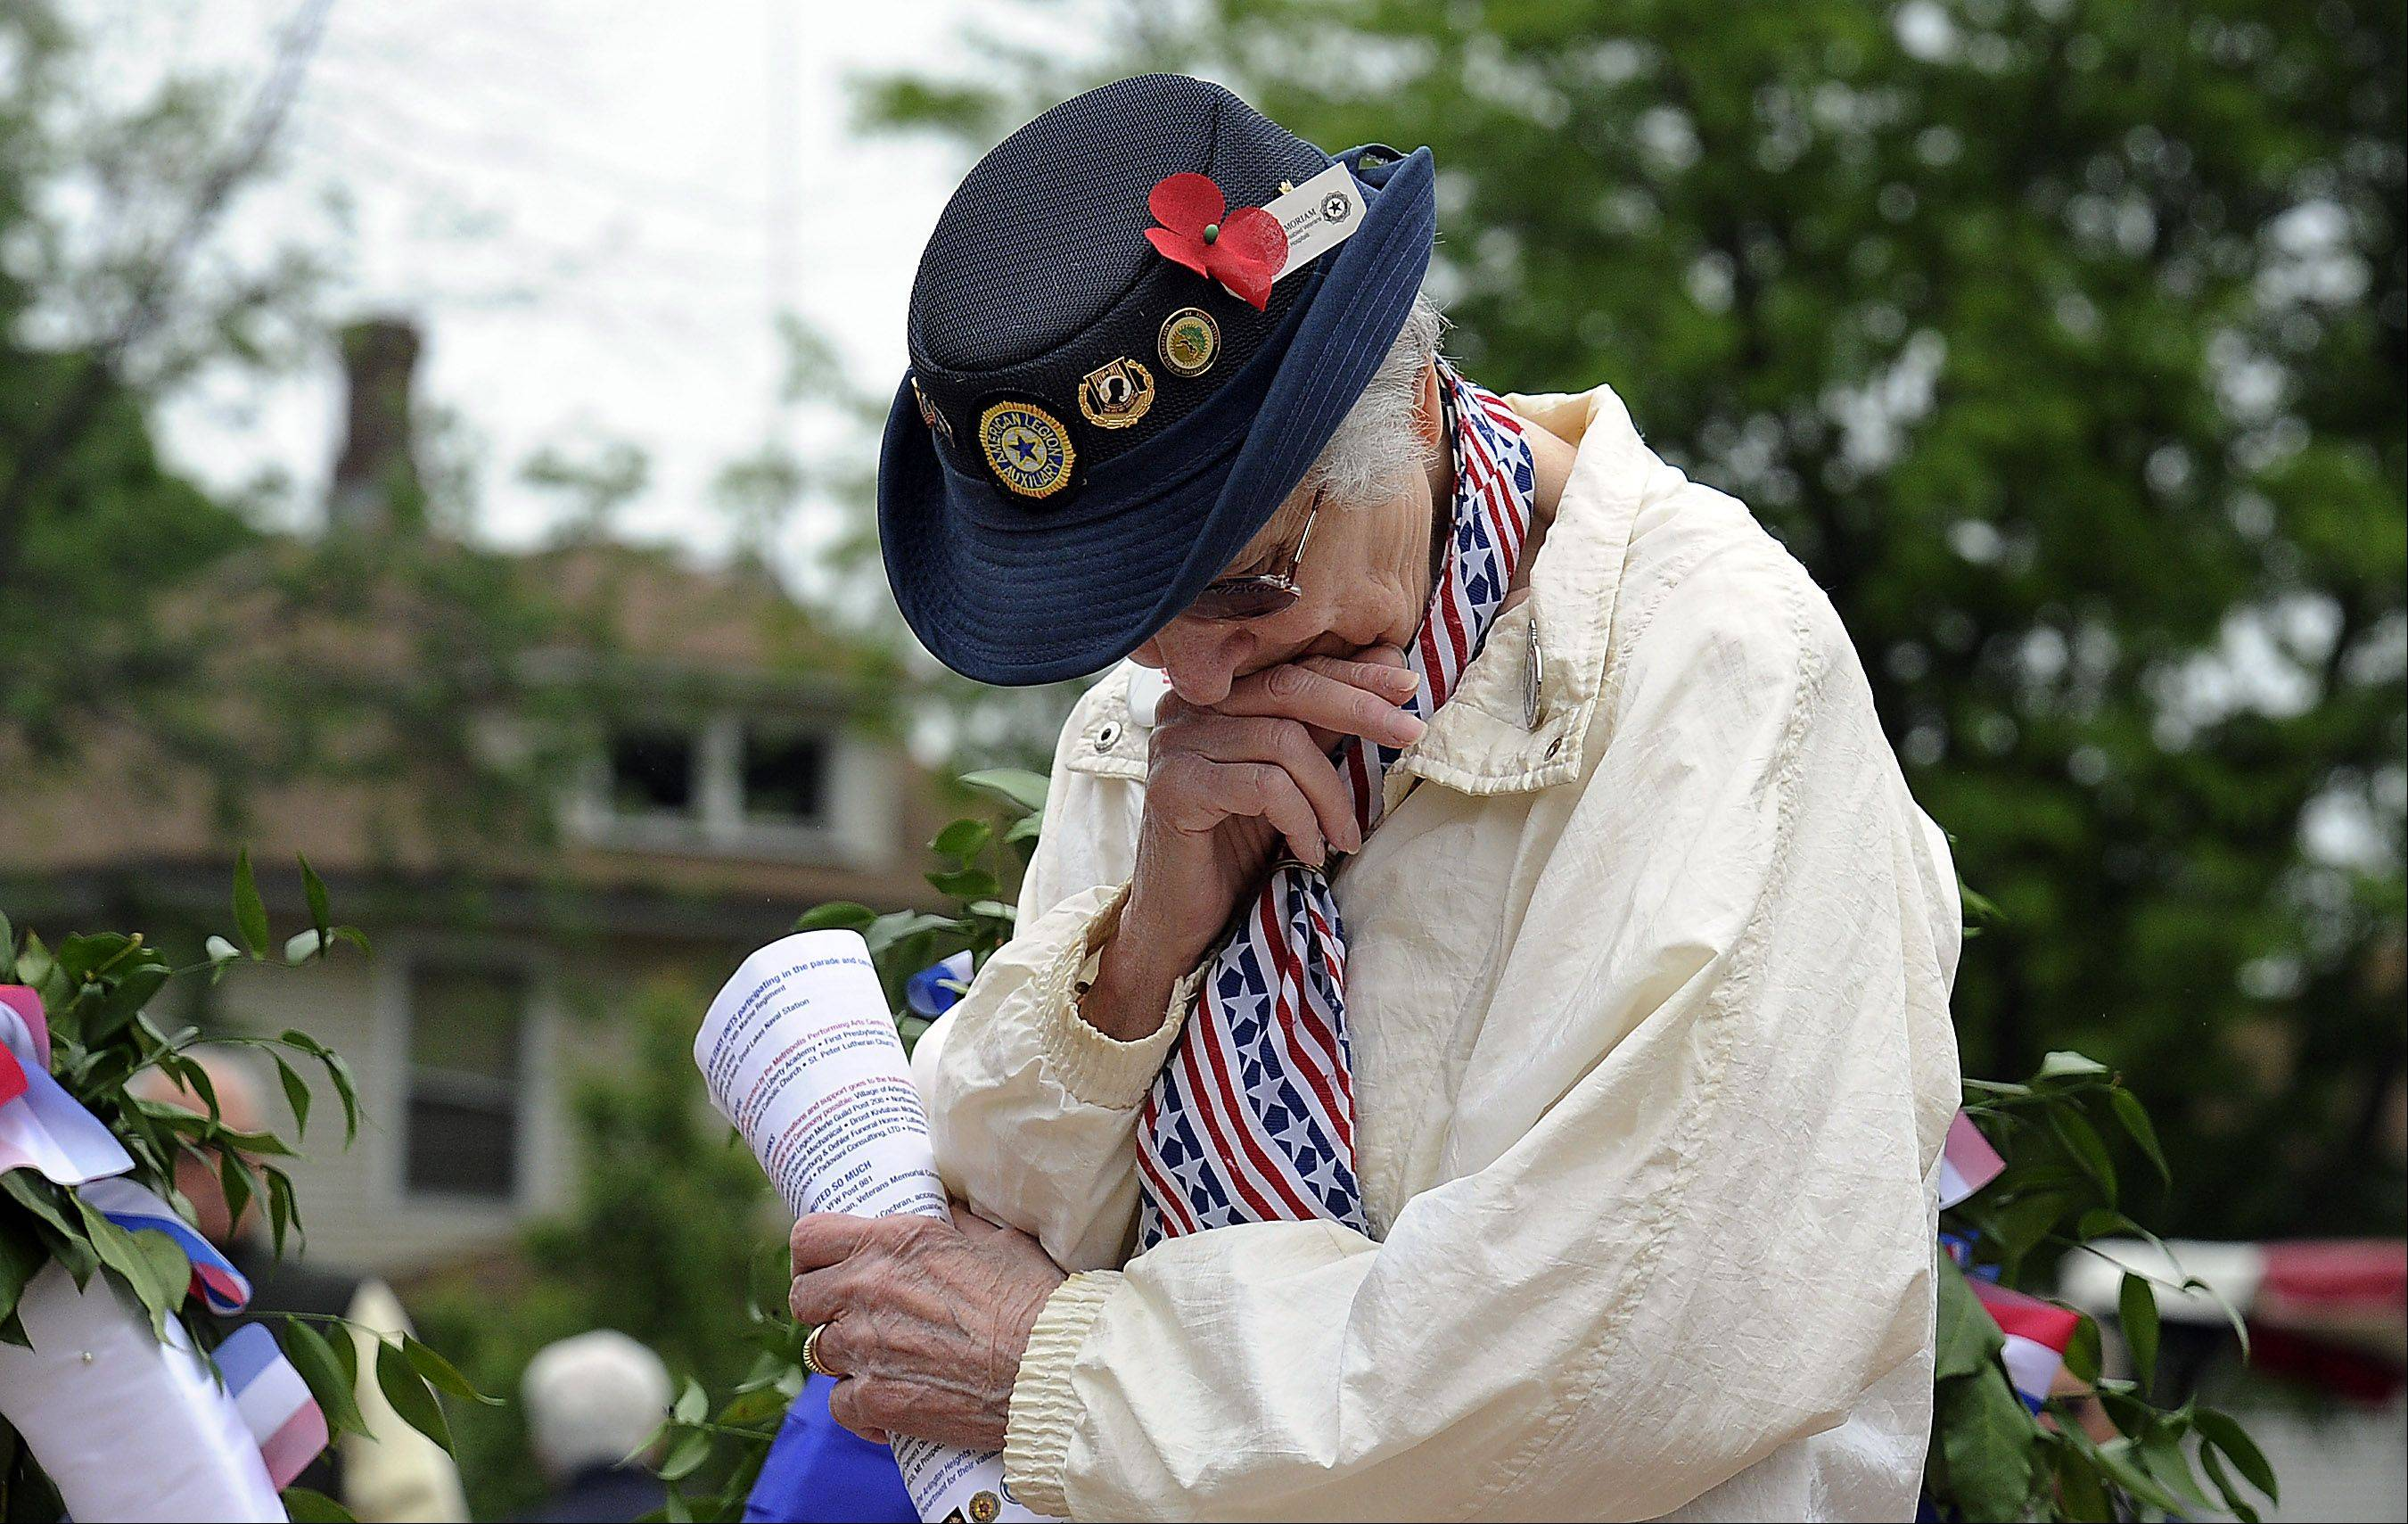 Dolly Cummings of Arlington Heights bows her head Monday during the Arlington Heights Memorial Day ceremony in remembrance of her fallen husband Don, who served in World War II and the Korean War.